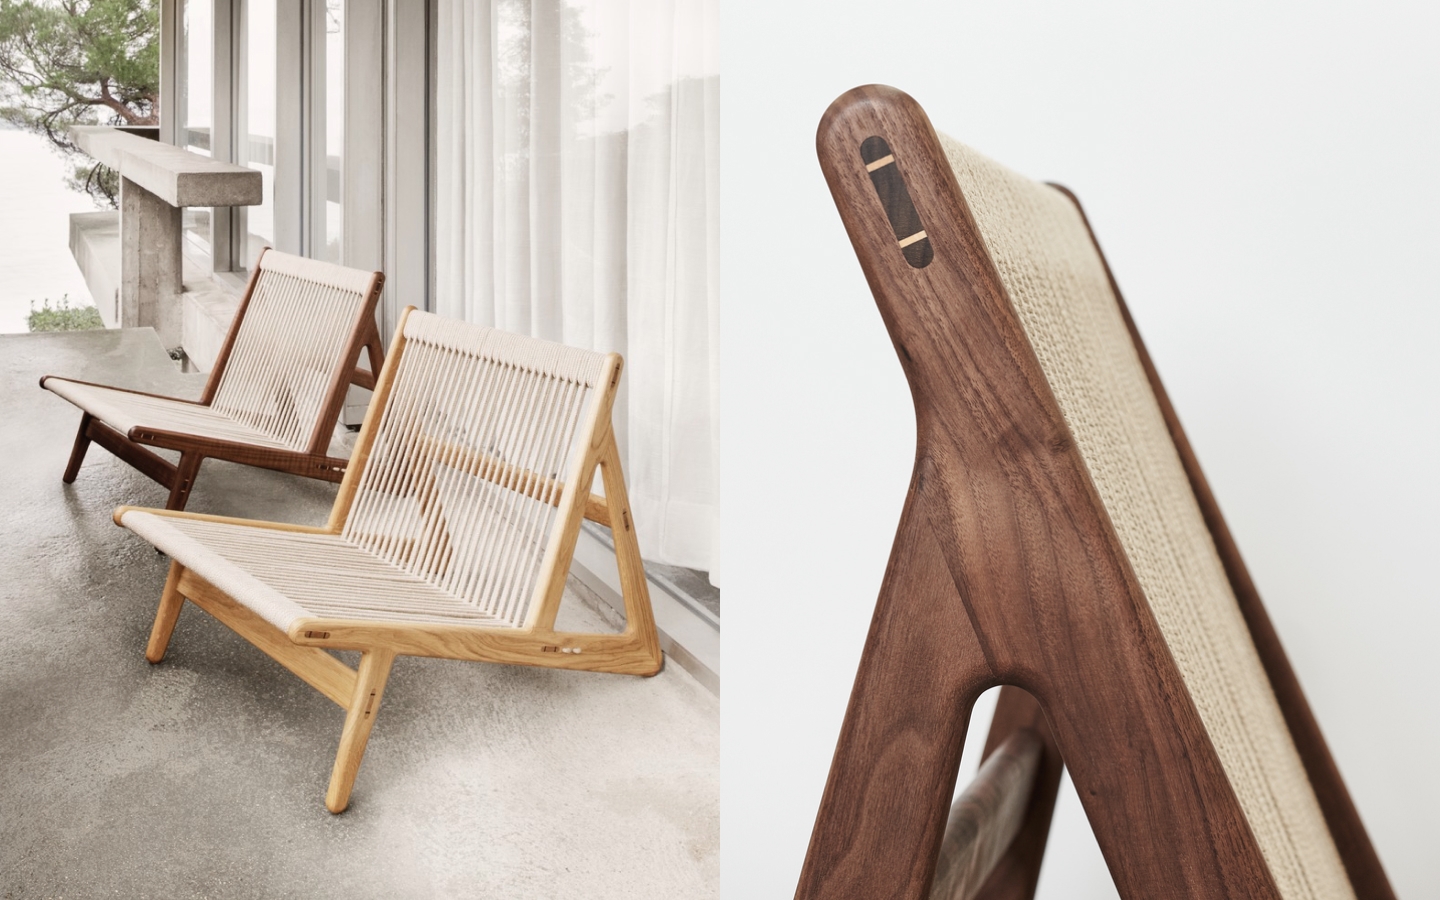 Low lounge chair with rope seat and backrest